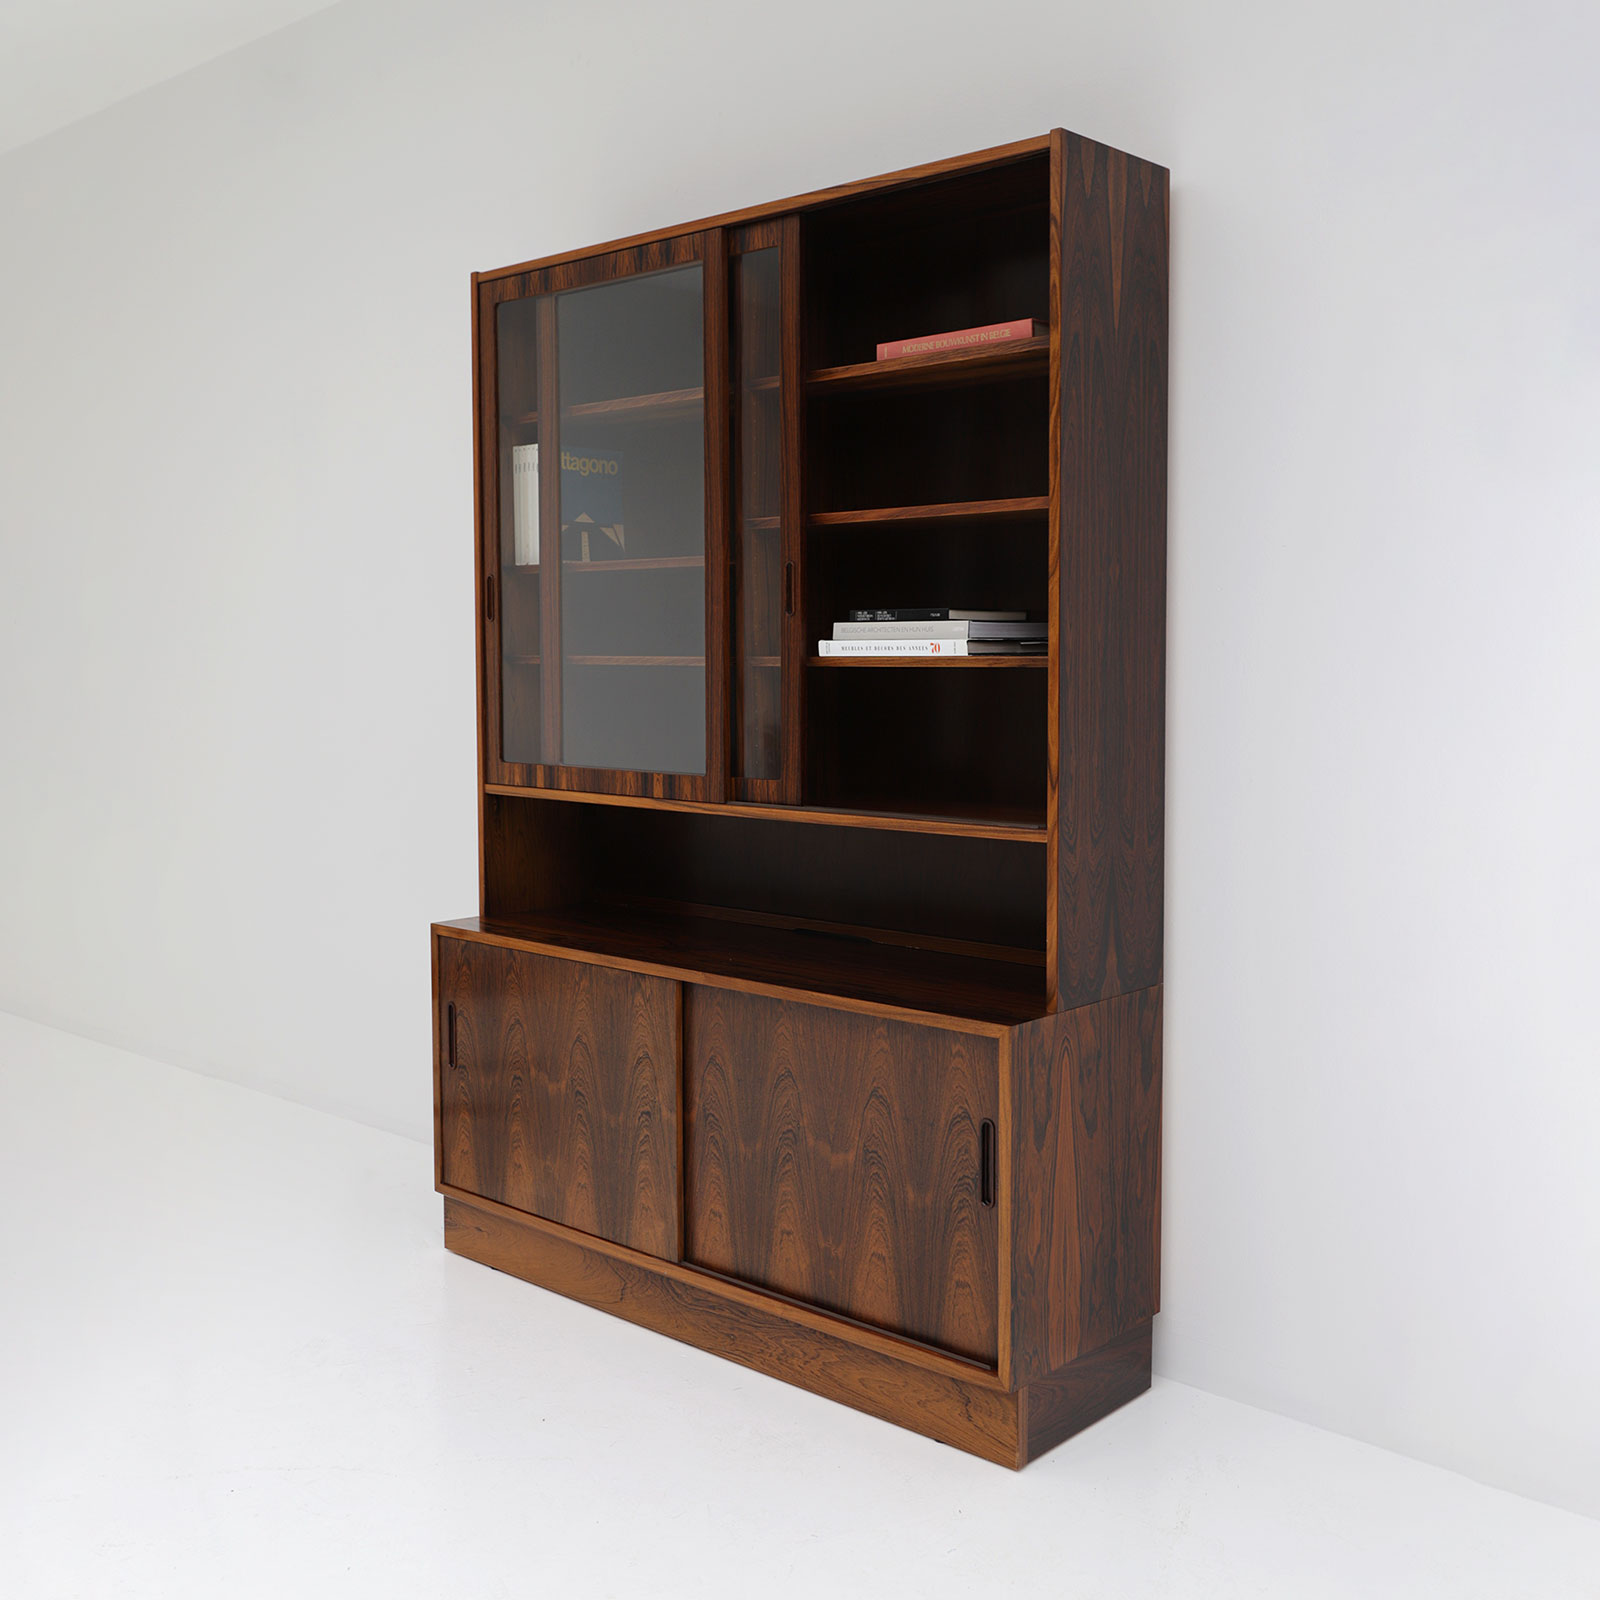 cabinet by Erik Brouer for Mobelfabrik 1960